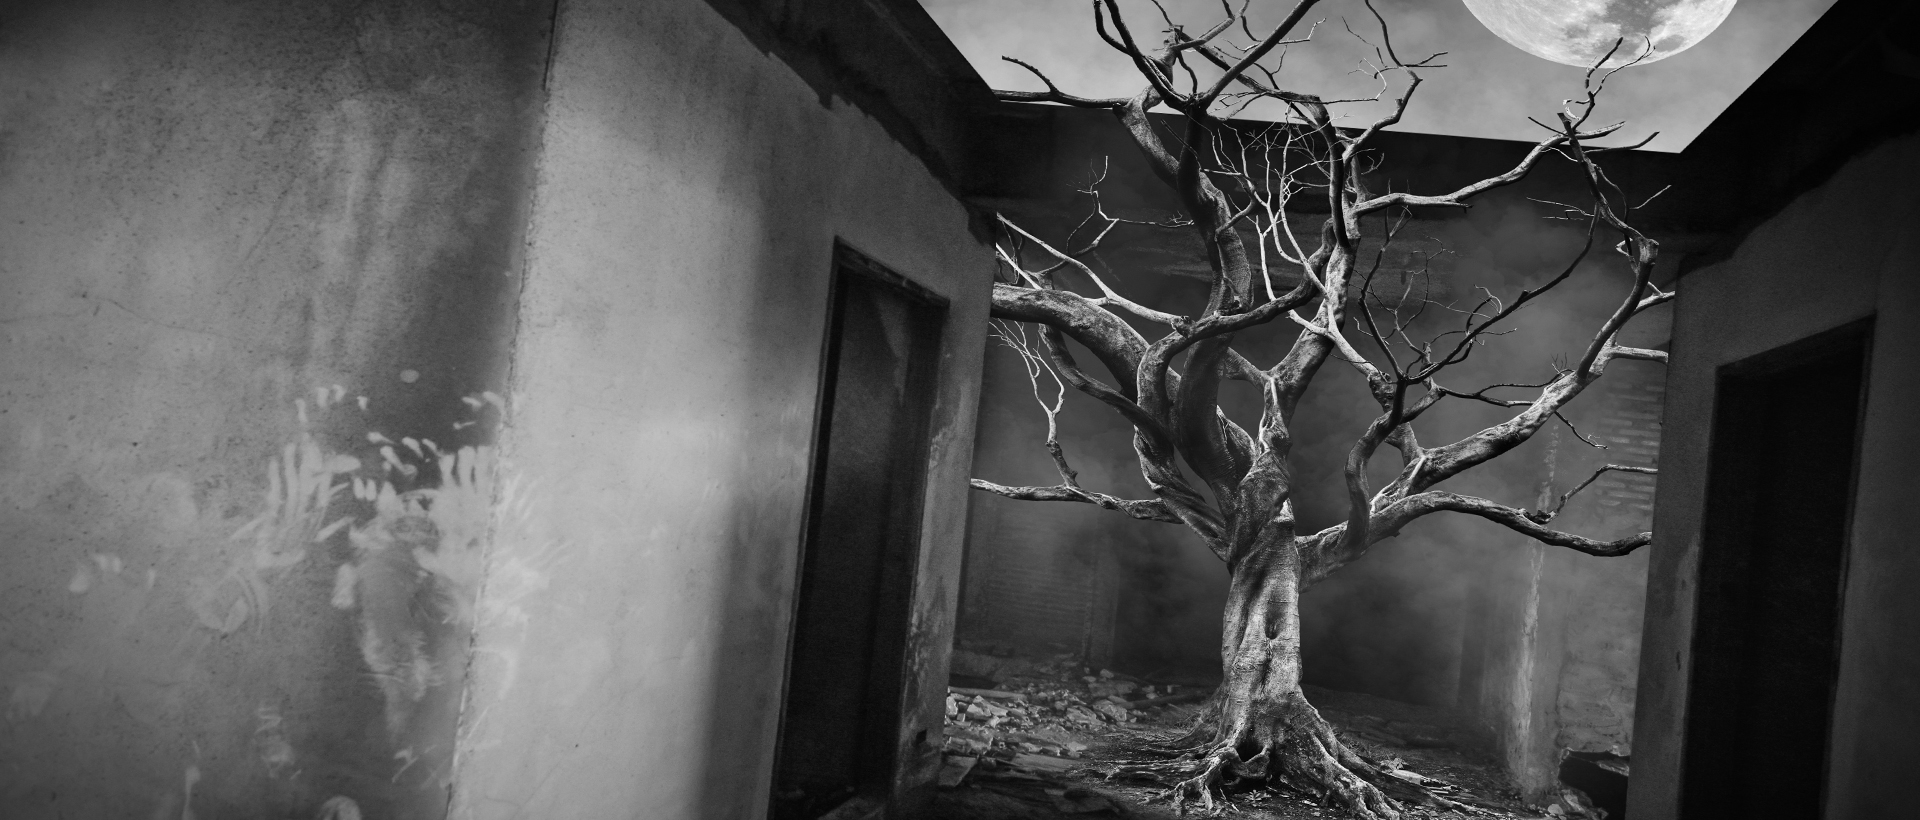 Generational curses image of dead tree in home setting in black and white